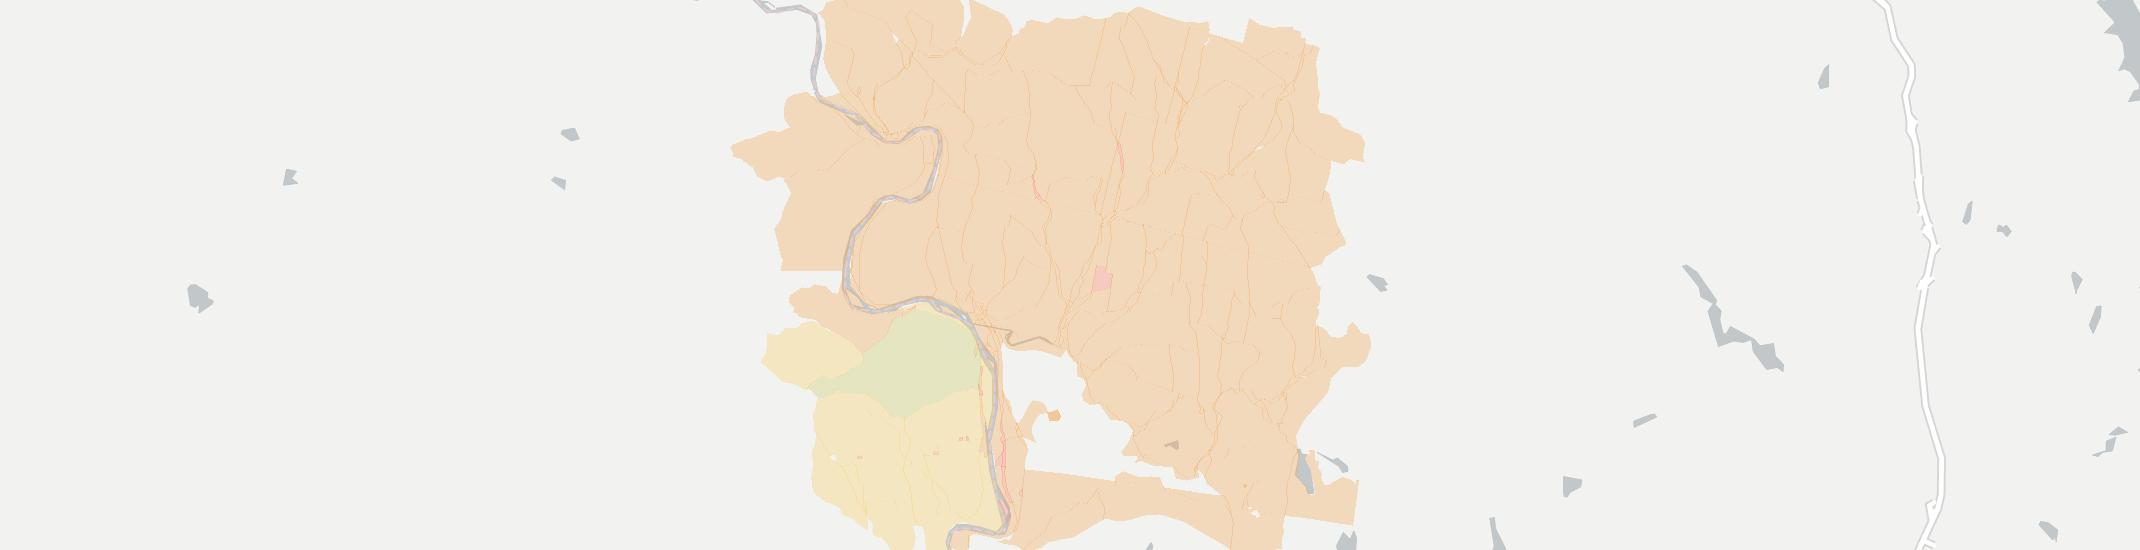 Callicoon Internet Competition Map. Click for interactive map.